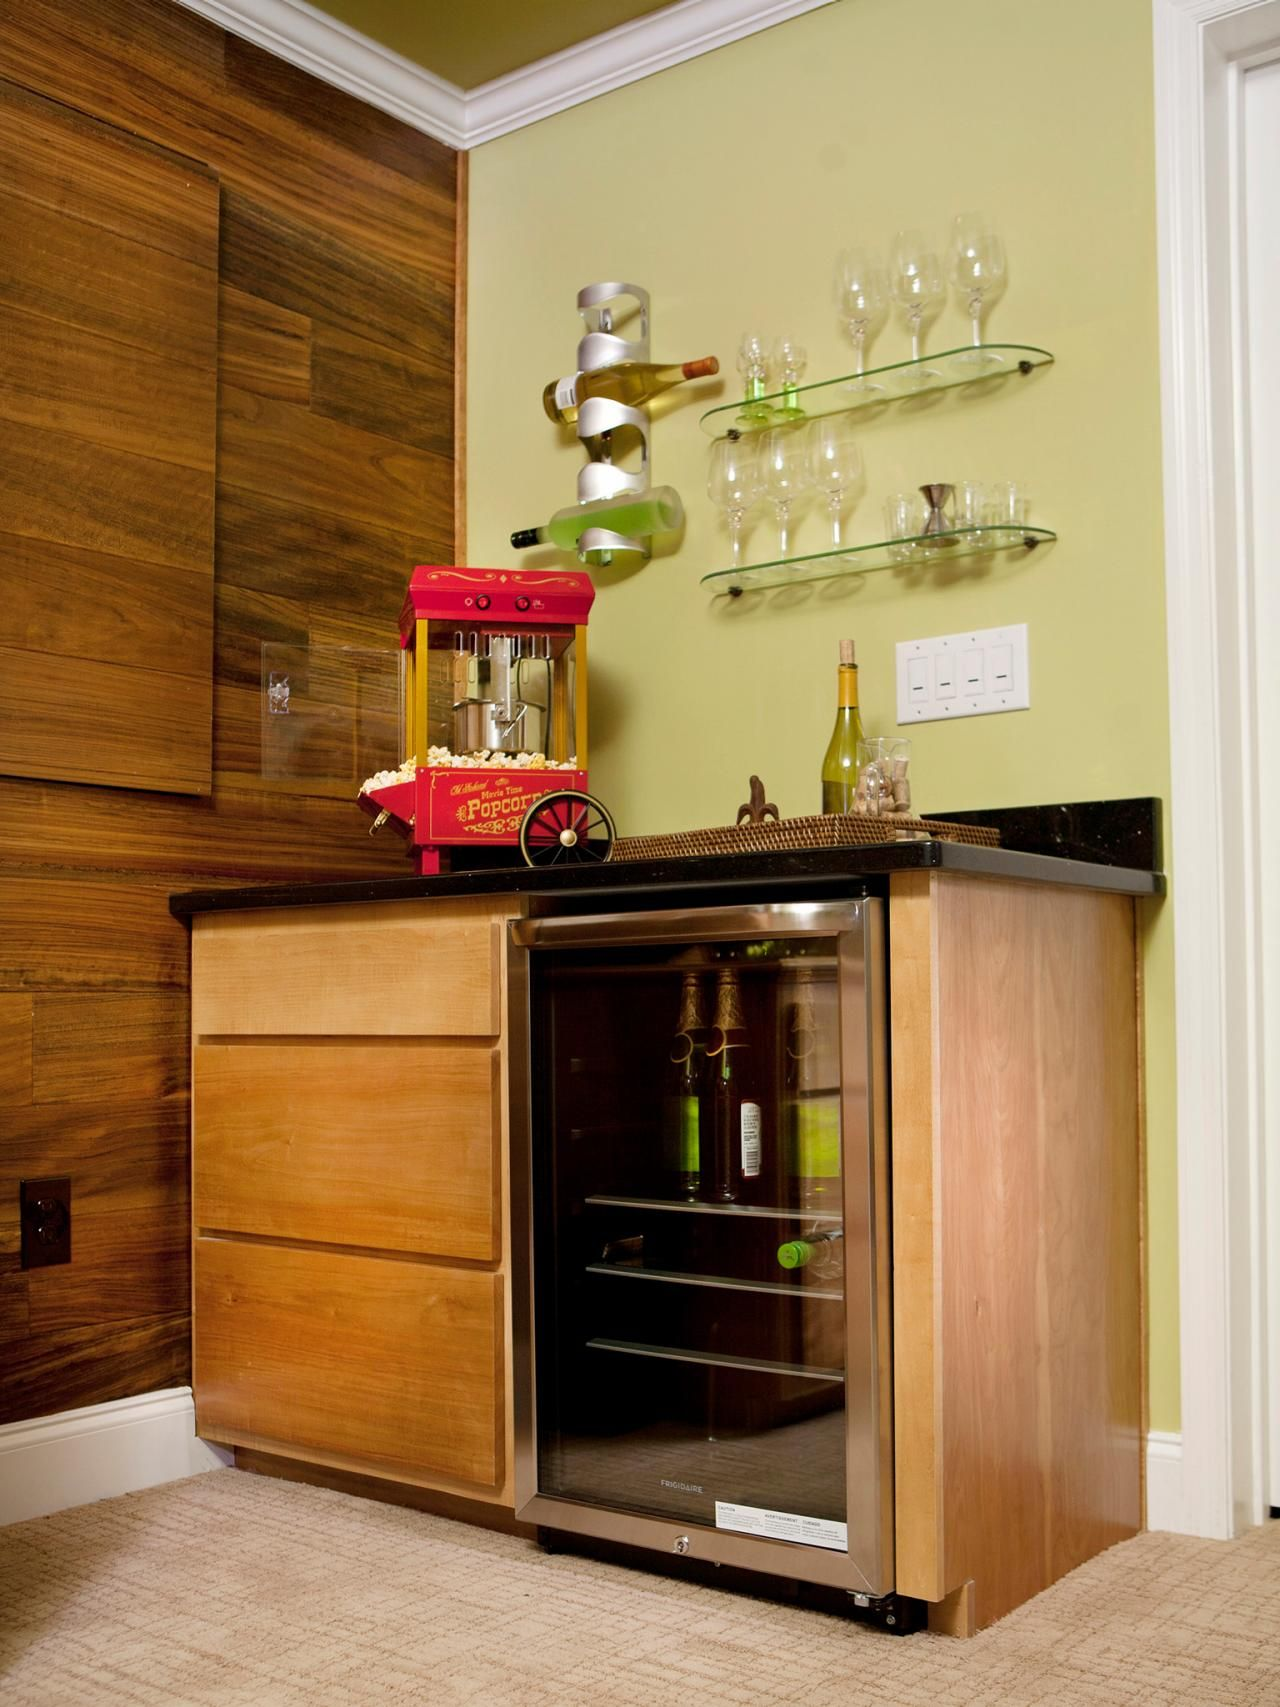 Basement bar ideas and designs pictures options tips home remodeling ideas for basements home theaters more hgtv coffee table